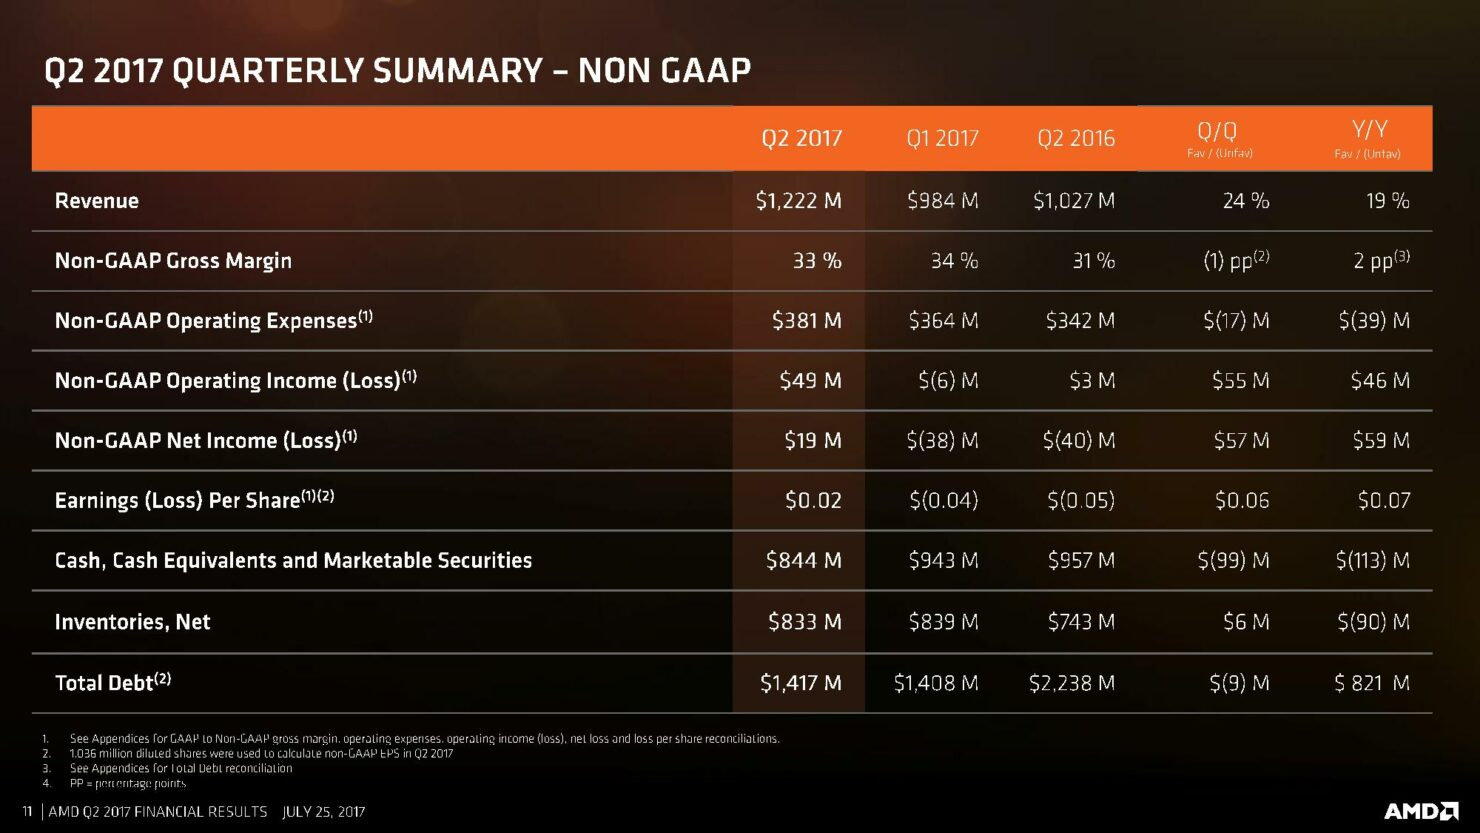 amd-cfo-commentary-slides-q2-17-page-011